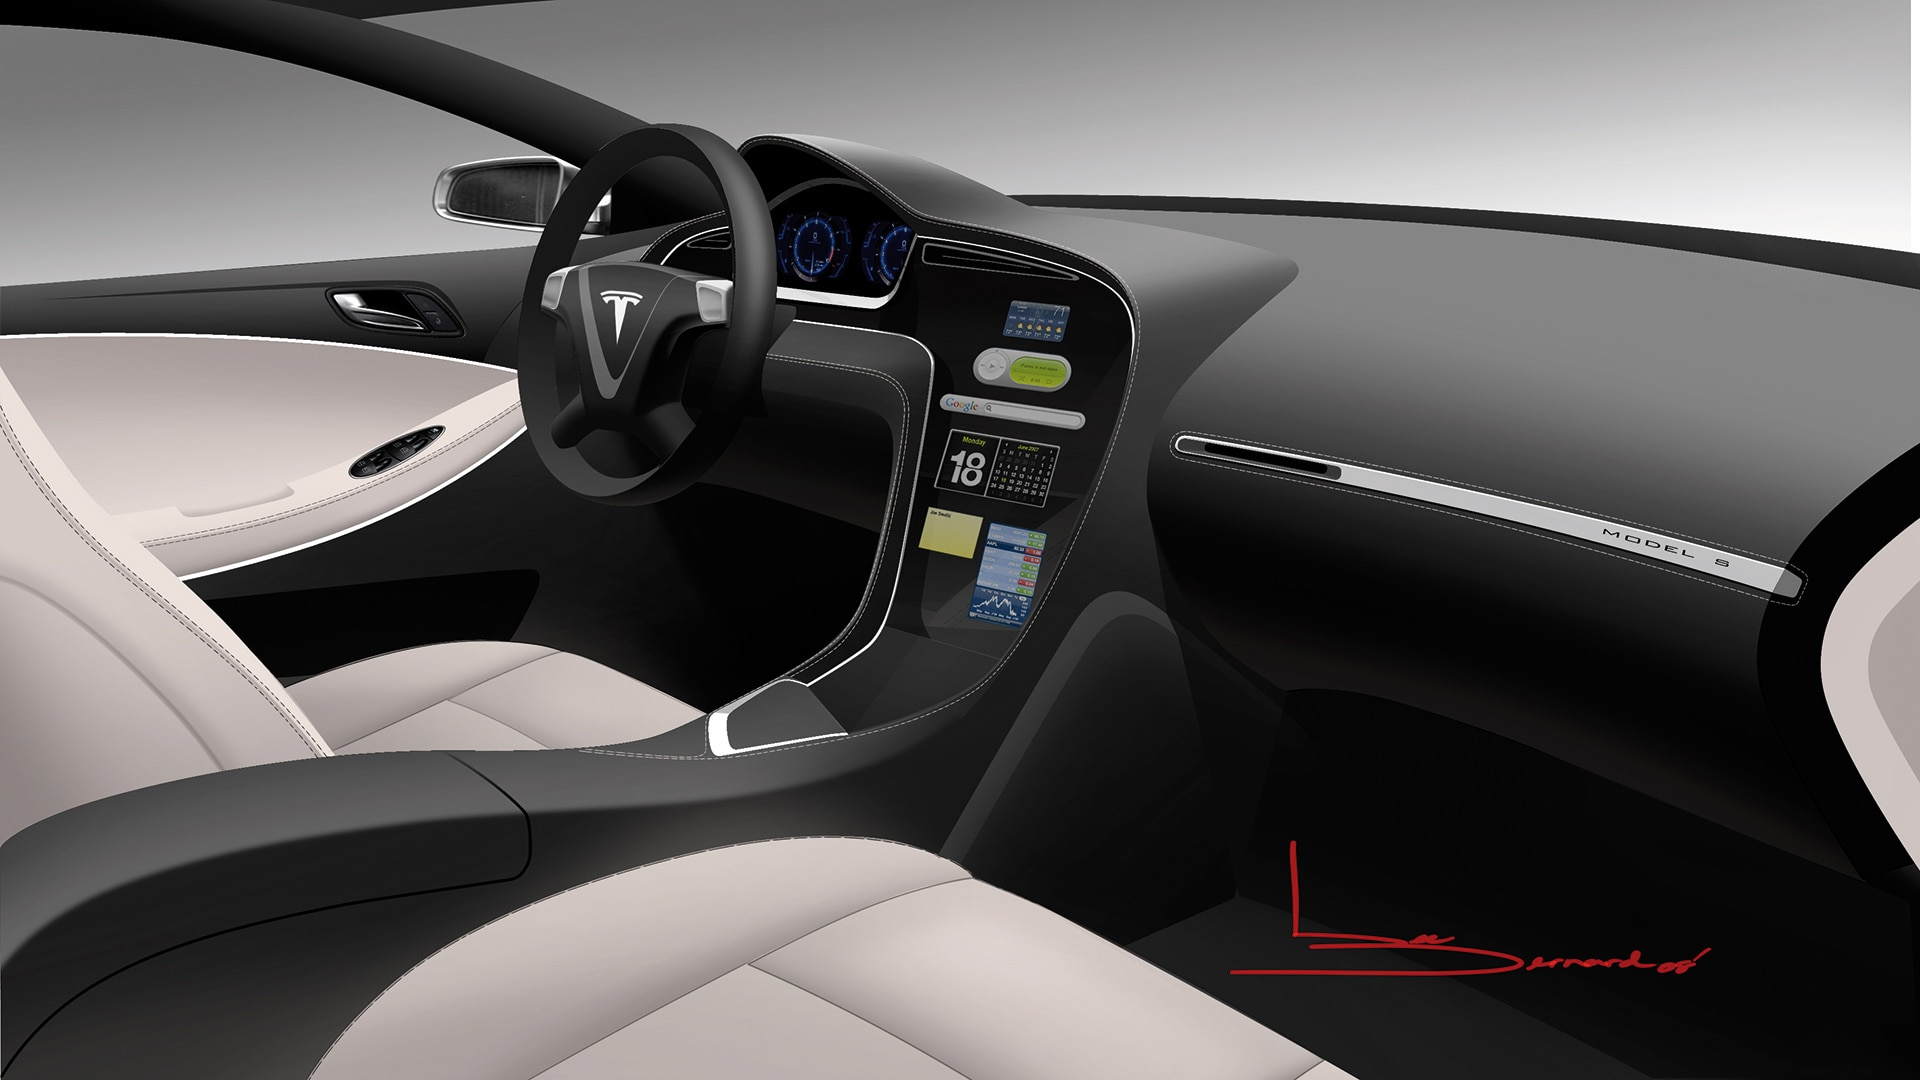 Download Free Trial Image Of Automotive Interior Made With Alias Surface